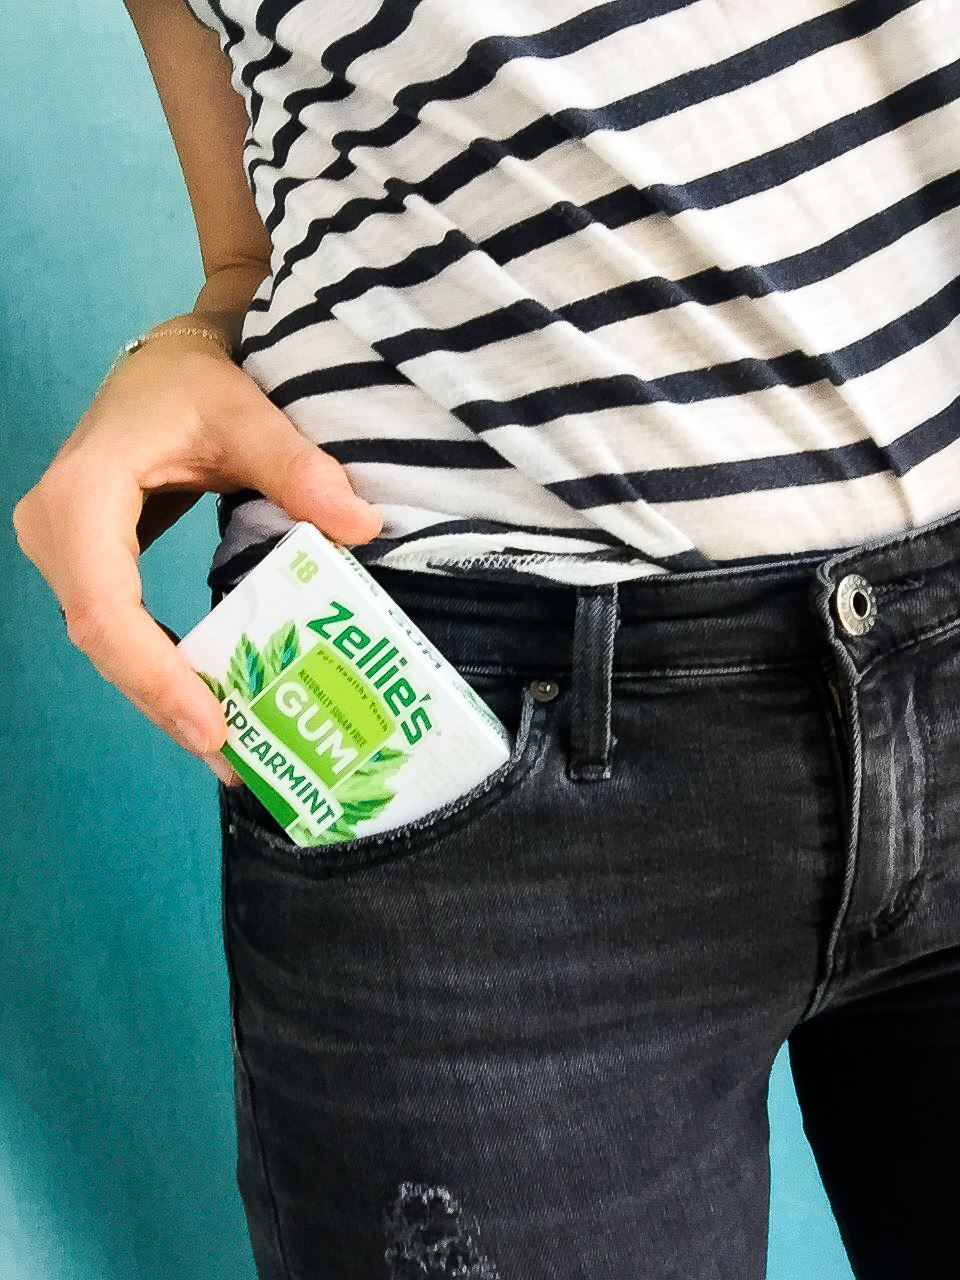 pulling pack of Zellie's gum from jeans pocket